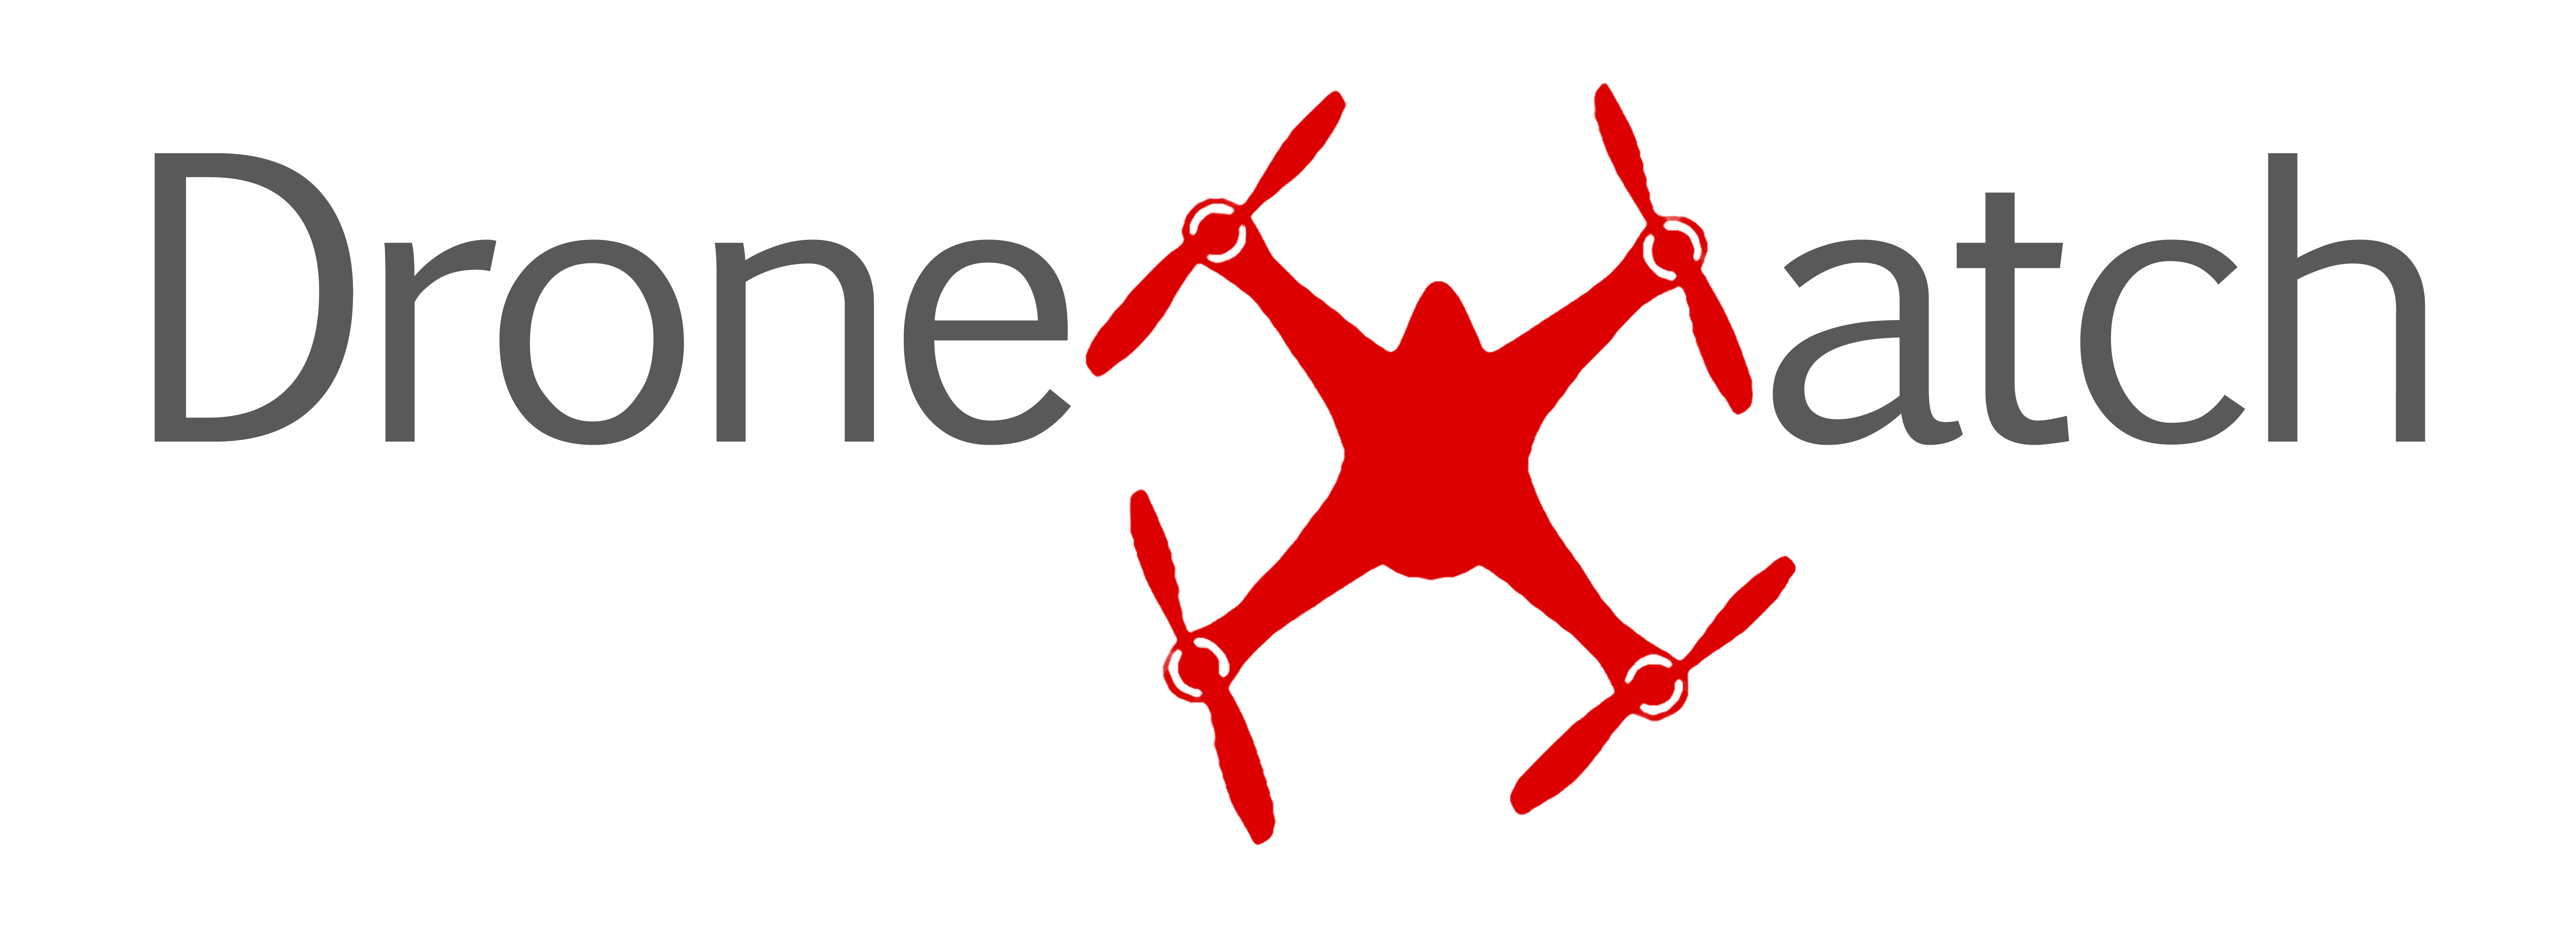 dronewatch